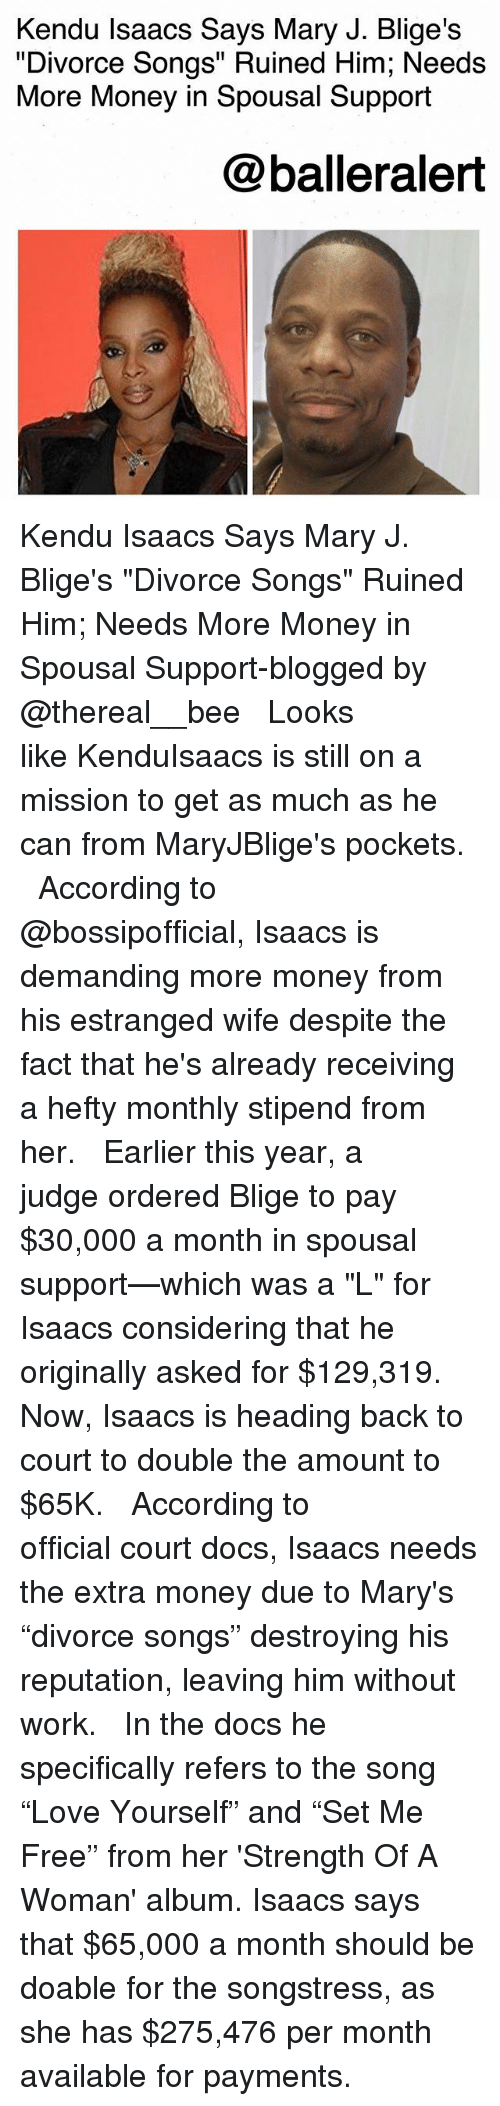 """Memes, Money, and Work: Kendu Isaacs Says Mary J. Blige's  """"Divorce Songs"""" Ruined Him; Needs  More Money in Spousal Support  @balleralert Kendu Isaacs Says Mary J. Blige's """"Divorce Songs"""" Ruined Him; Needs More Money in Spousal Support-blogged by @thereal__bee ⠀⠀⠀⠀⠀⠀⠀⠀⠀ ⠀⠀ Looks like KenduIsaacs is still on a mission to get as much as he can from MaryJBlige's pockets. ⠀⠀⠀⠀⠀⠀⠀⠀⠀ ⠀⠀ According to @bossipofficial, Isaacs is demanding more money from his estranged wife despite the fact that he's already receiving a hefty monthly stipend from her. ⠀⠀⠀⠀⠀⠀⠀⠀⠀ ⠀⠀ Earlier this year, a judge ordered Blige to pay $30,000 a month in spousal support—which was a """"L"""" for Isaacs considering that he originally asked for $129,319. Now, Isaacs is heading back to court to double the amount to $65K. ⠀⠀⠀⠀⠀⠀⠀⠀⠀ ⠀⠀ According to official court docs, Isaacs needs the extra money due to Mary's """"divorce songs"""" destroying his reputation, leaving him without work. ⠀⠀⠀⠀⠀⠀⠀⠀⠀ ⠀⠀ In the docs he specifically refers to the song """"Love Yourself"""" and """"Set Me Free"""" from her 'Strength Of A Woman' album. Isaacs says that $65,000 a month should be doable for the songstress, as she has $275,476 per month available for payments."""